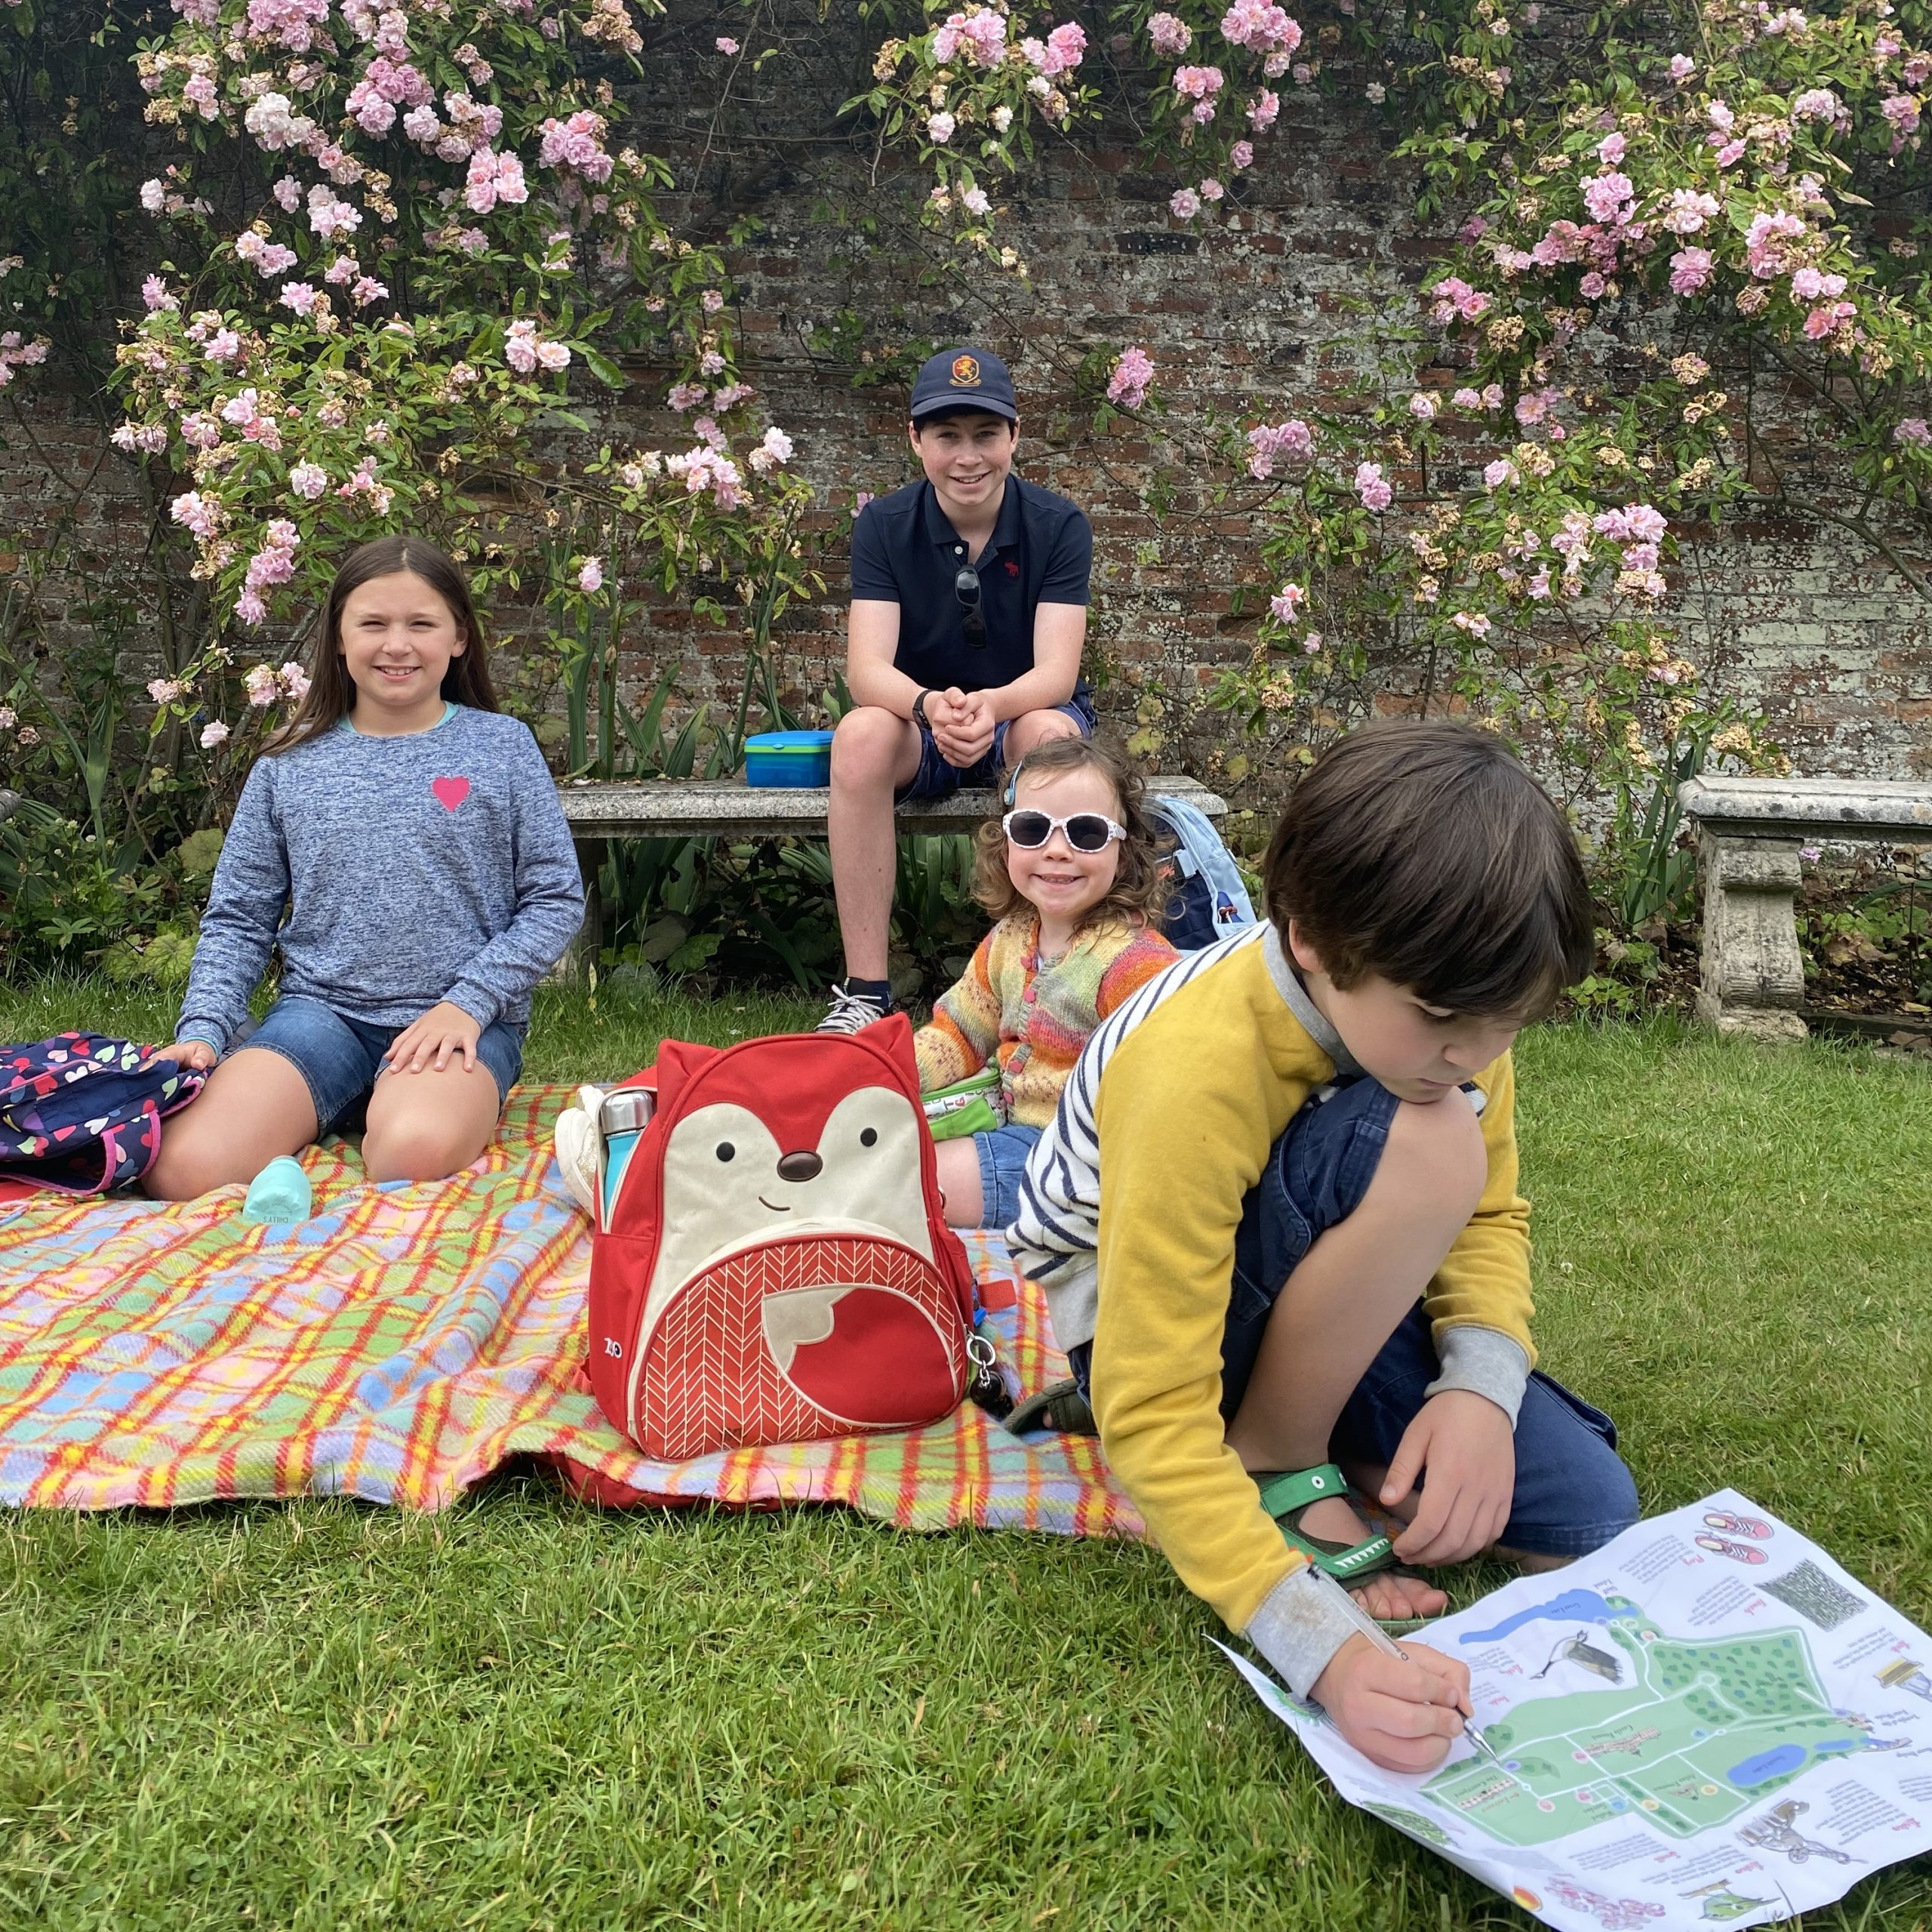 Visiting Castle Howard sat in the rose garden with four kids